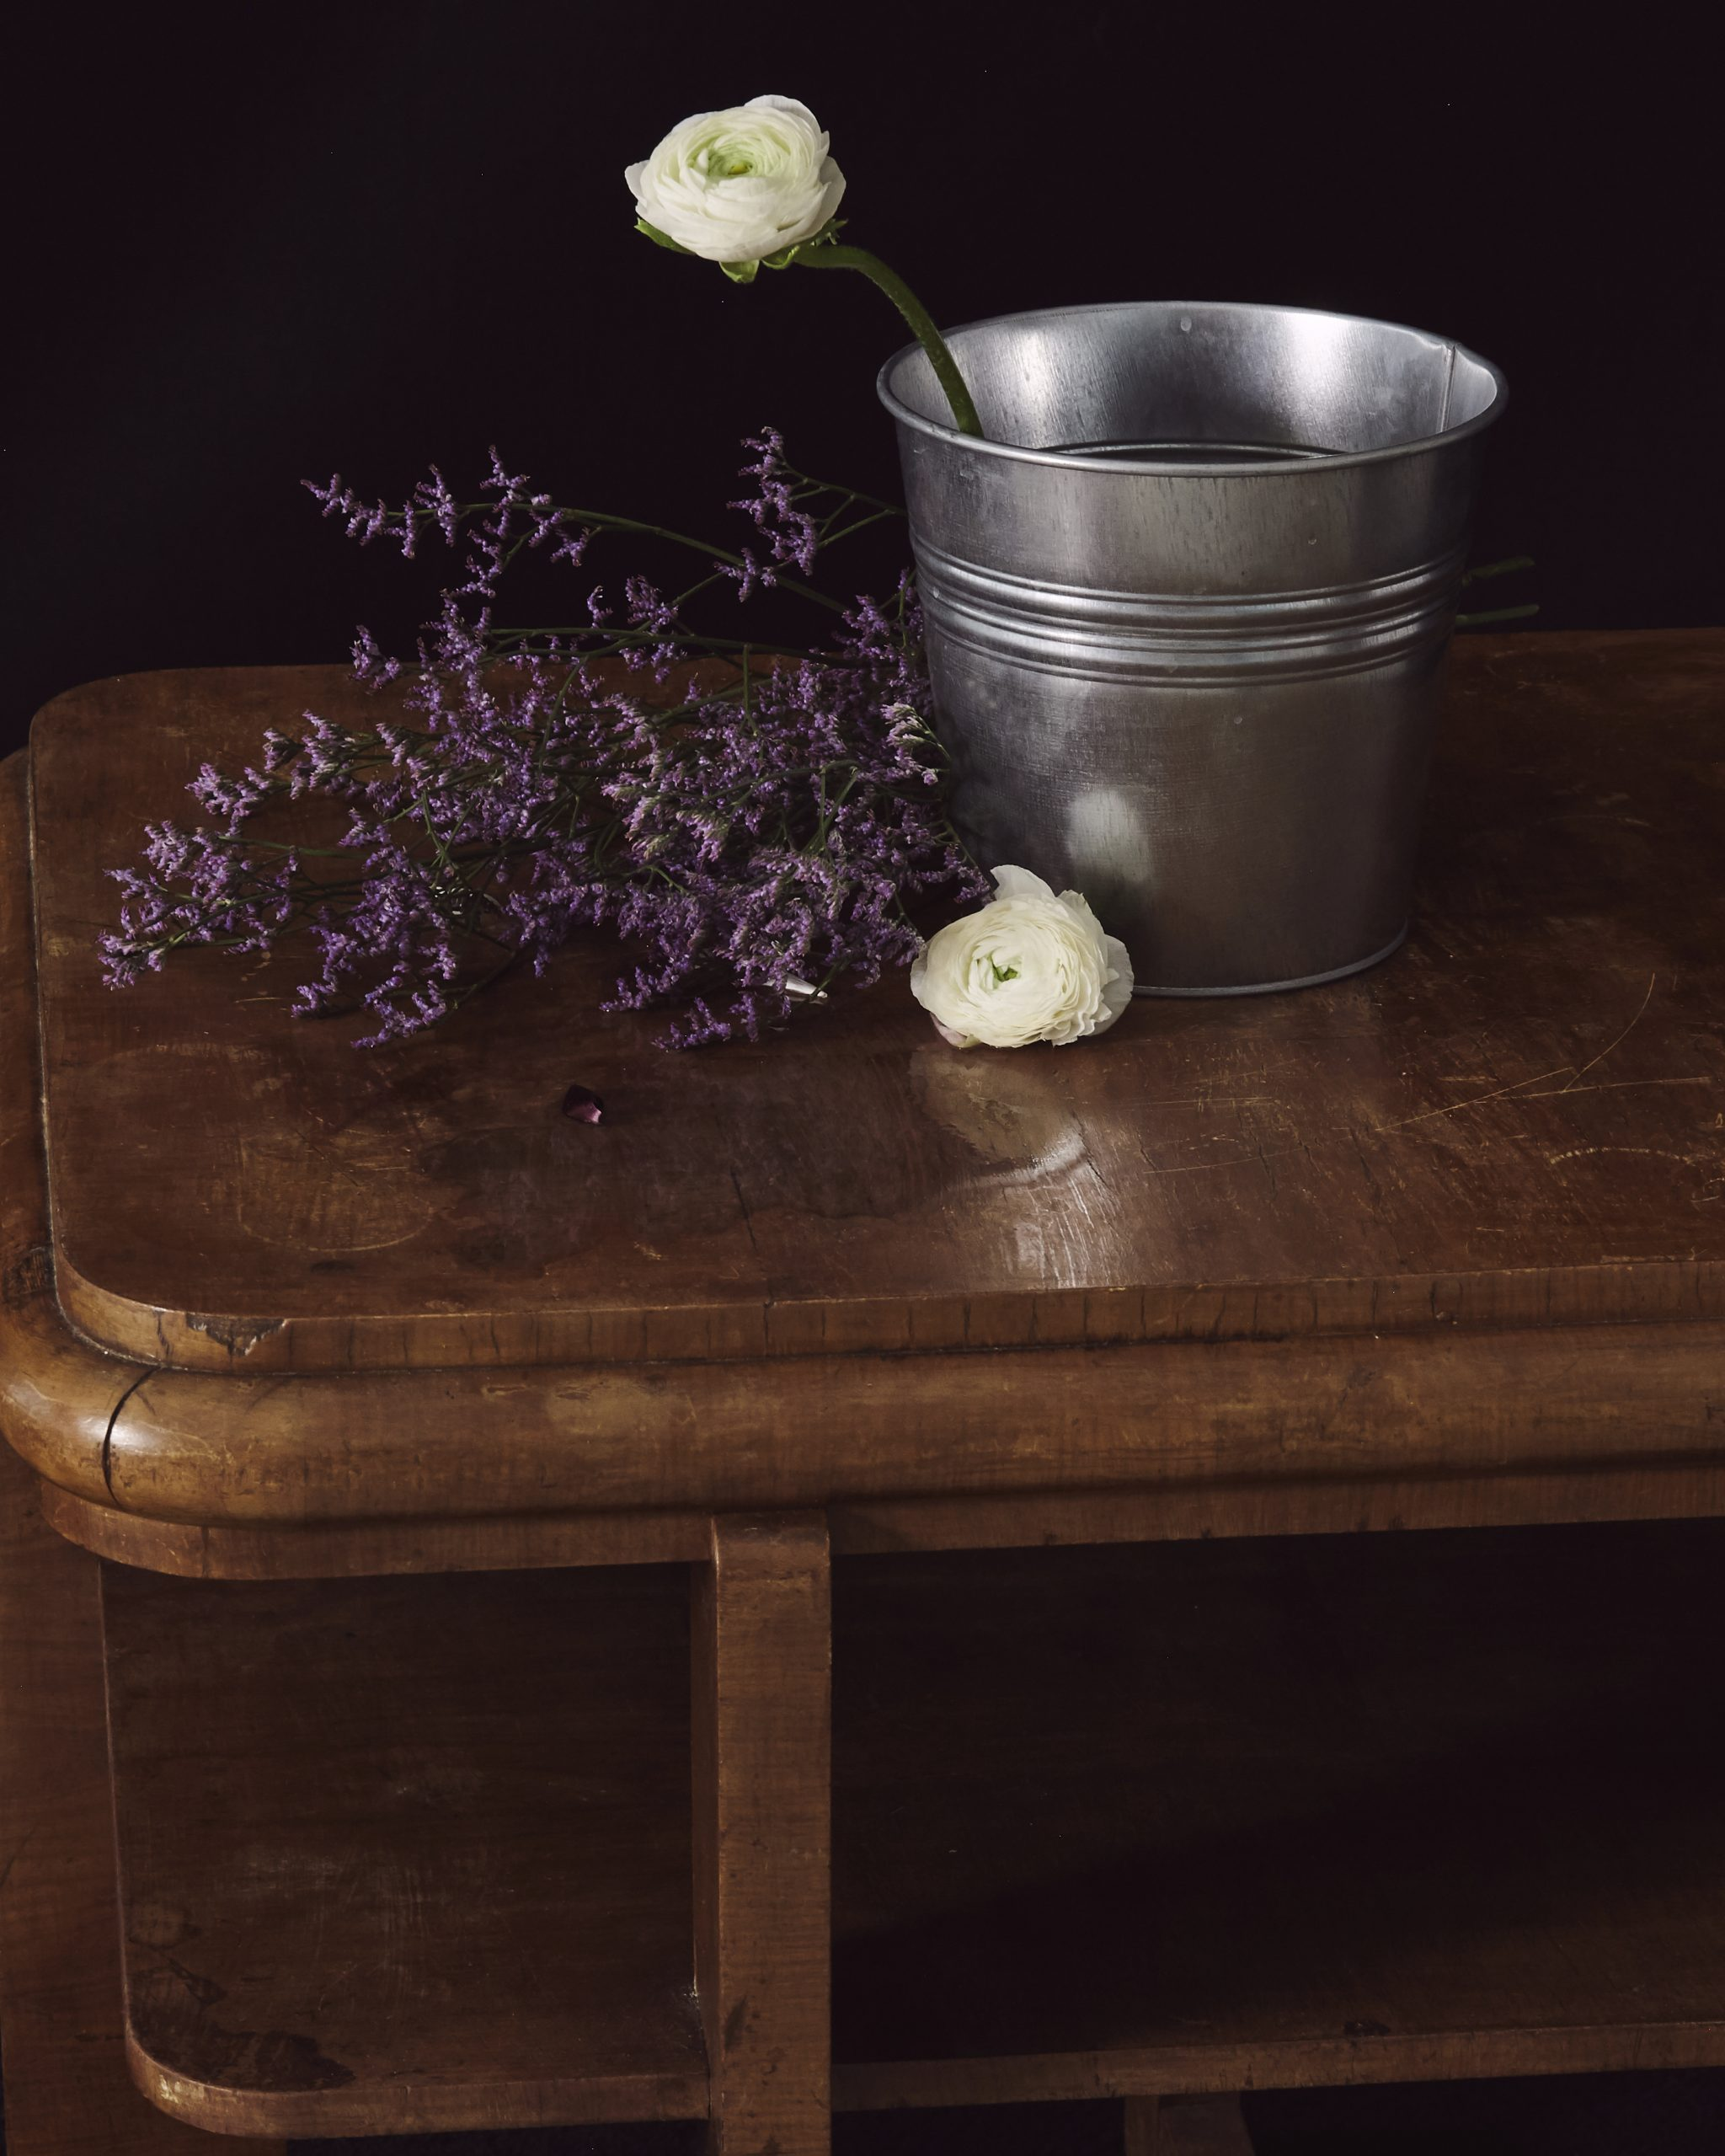 Still life with flowers and bucket by Heidi Rondak